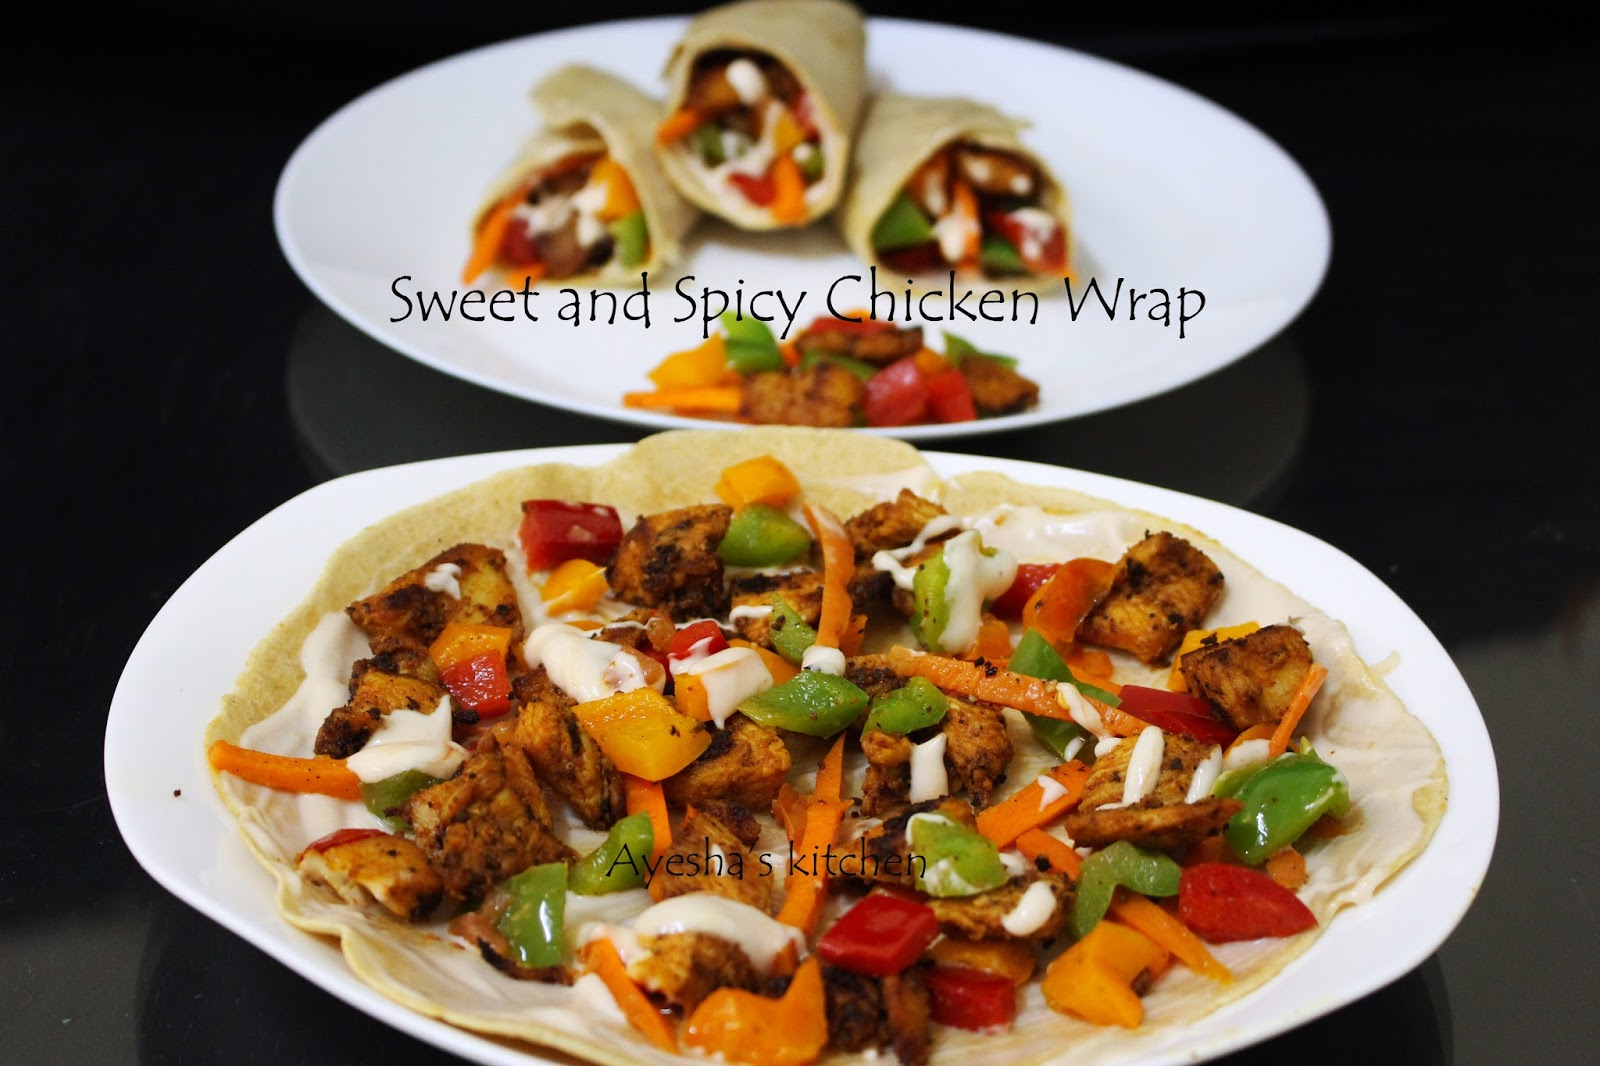 Sweet and spicy chicken wrap recipe easy dinner ideas tuesday april 19 2016 forumfinder Images